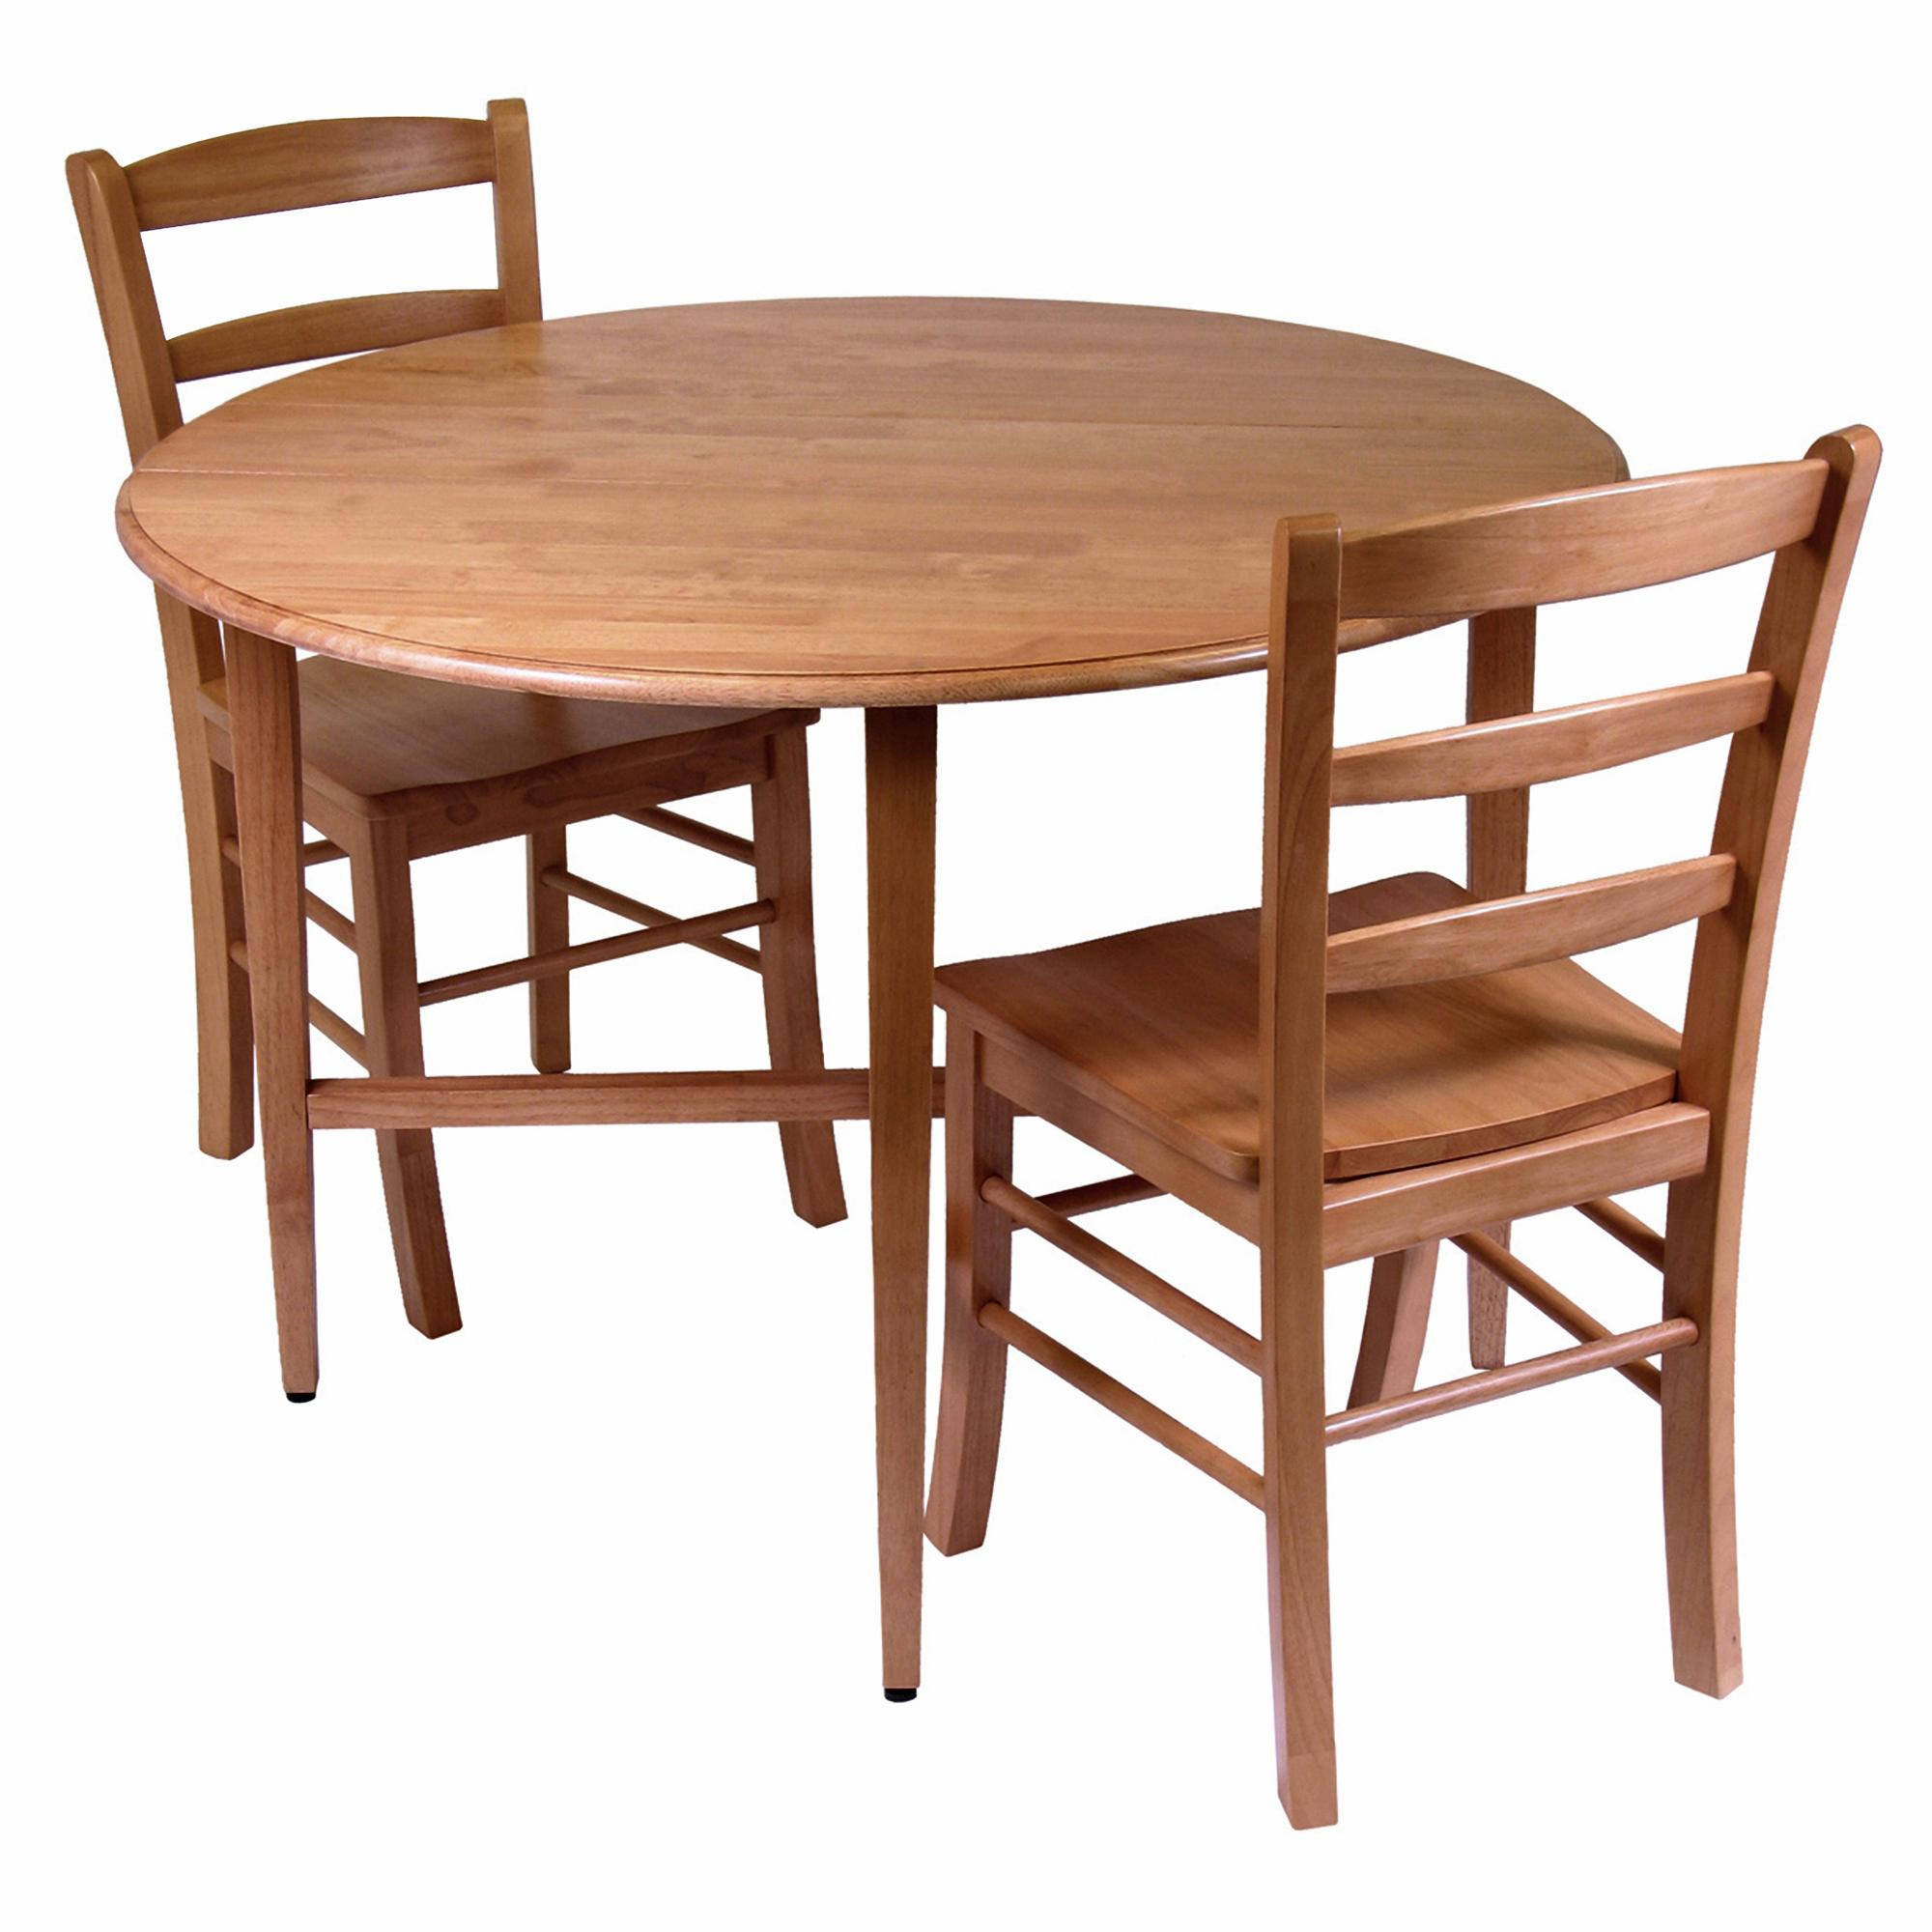 Dining Table With Two Chairs: Winsome Hannah Dining Set, Drop Leaf Table